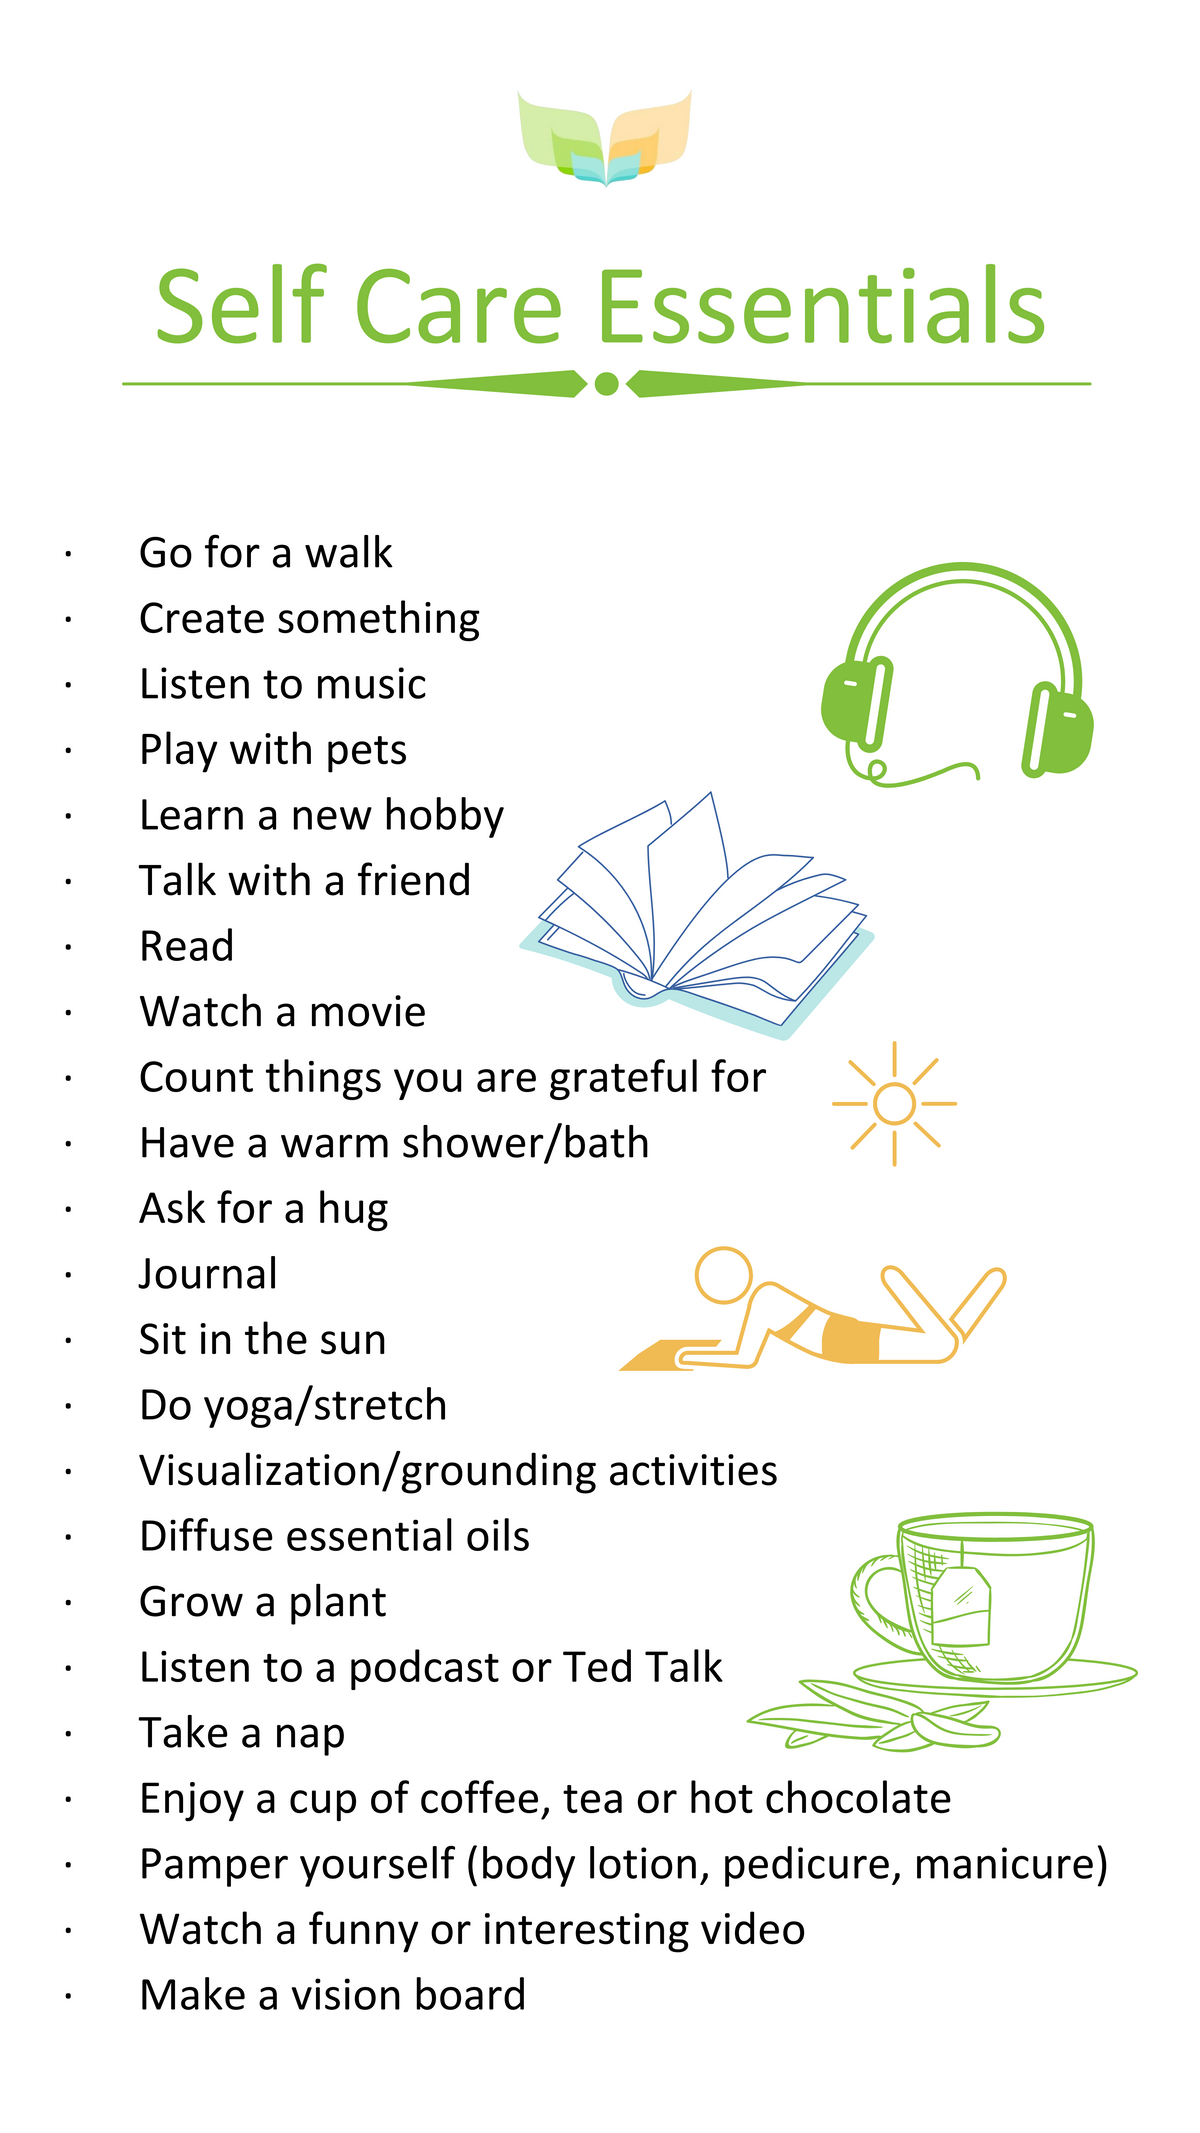 Self-Care-Essentials-602bd5c2aa323.png